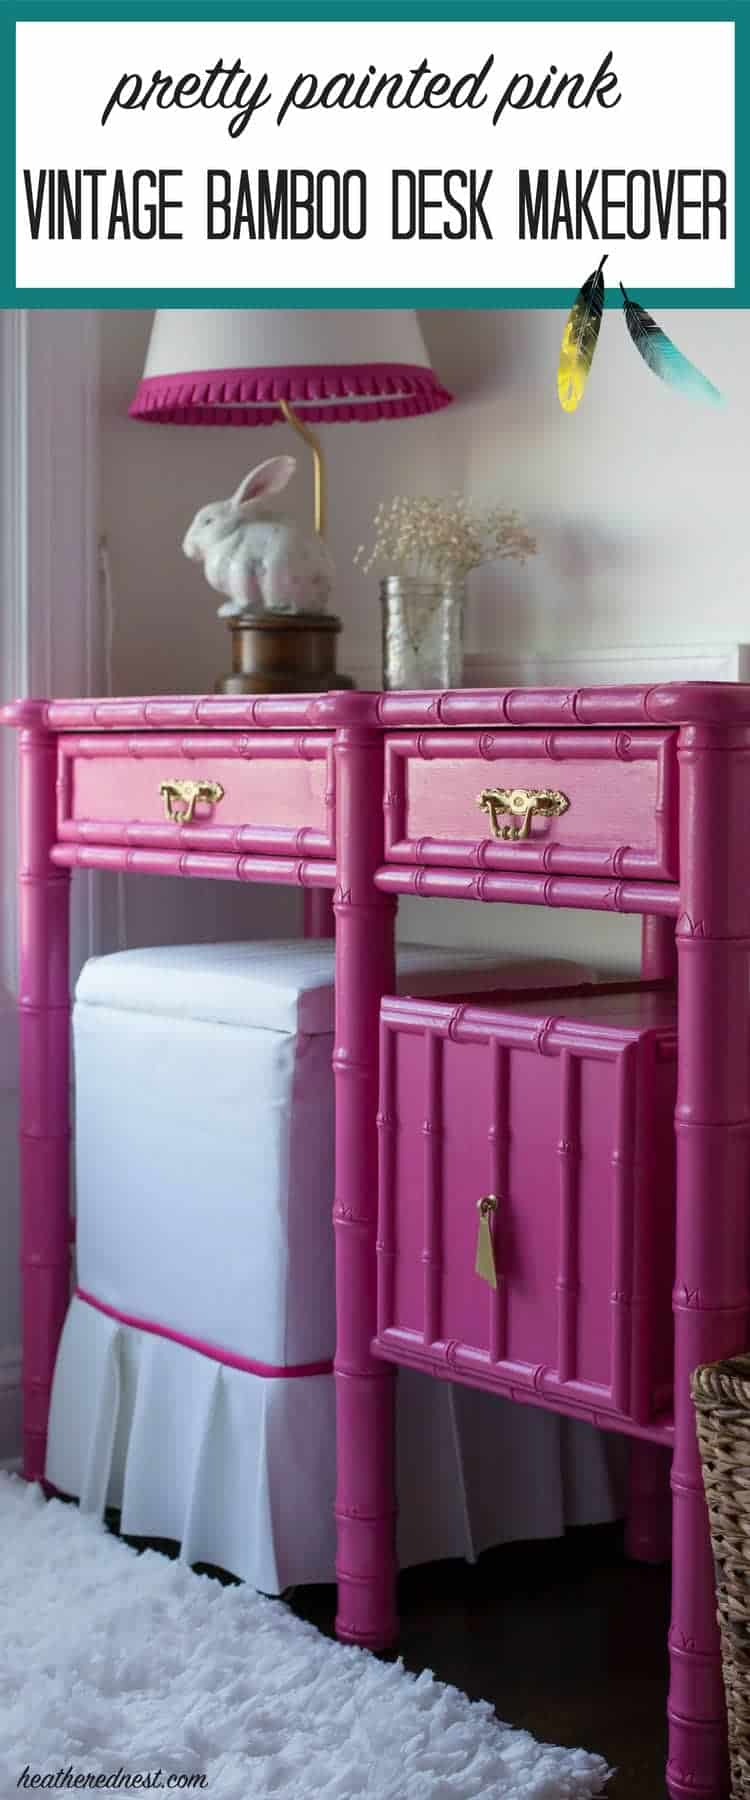 What a GORGEOUS painted furniture makeover! LOVE this pink desk/vintage bamboo desk done in pink...want to try this for my daughter's bedroom too!